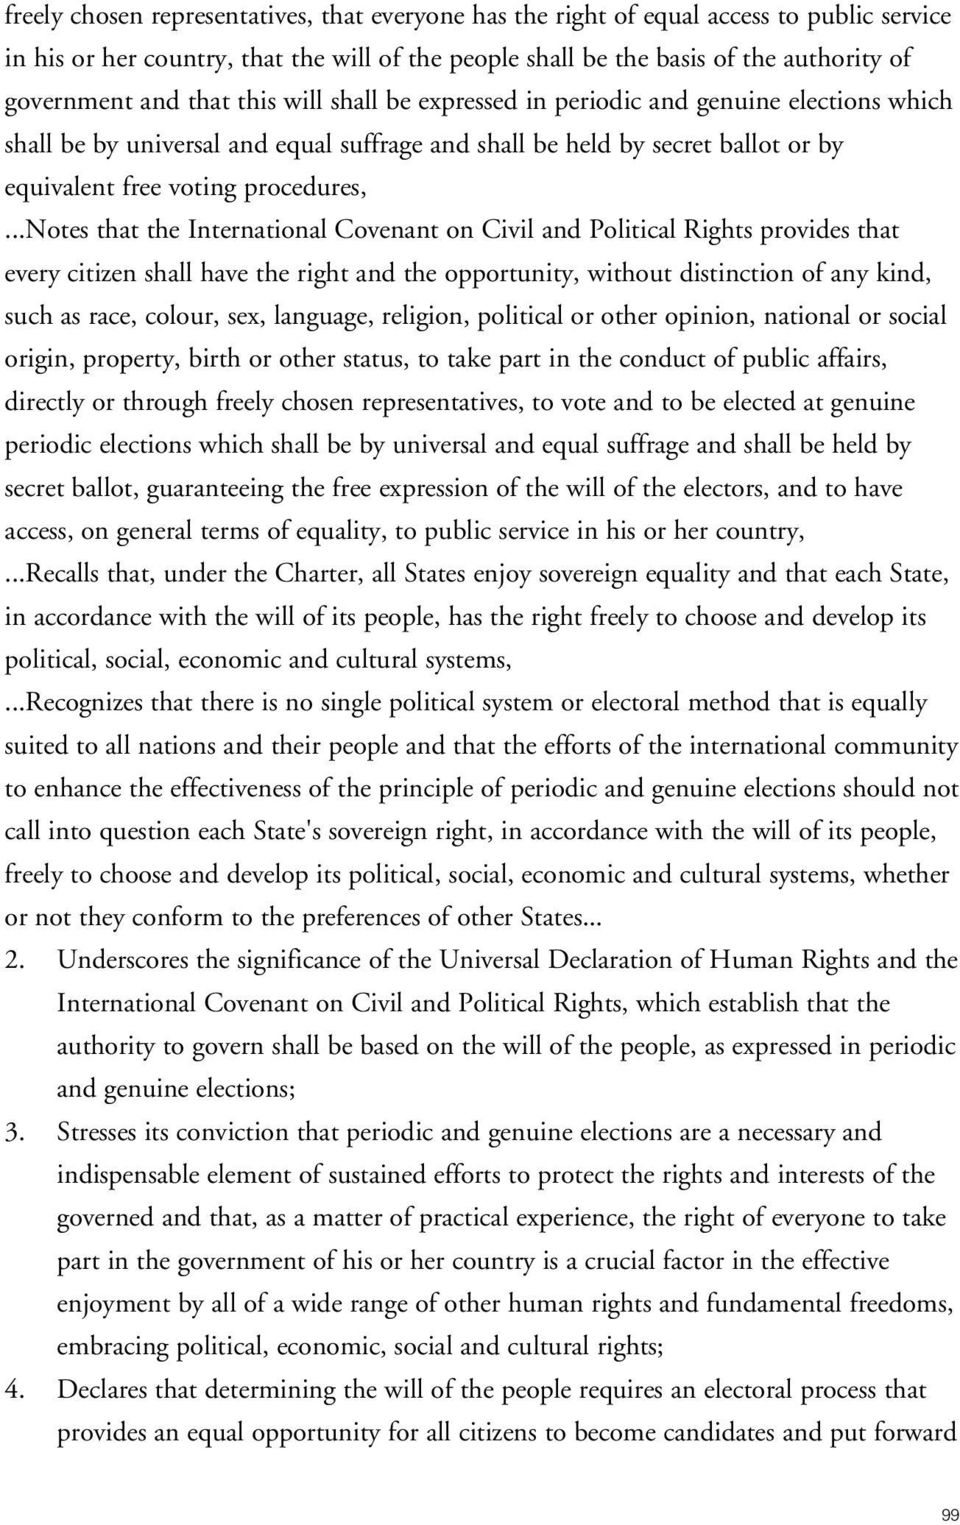 ..notes that the International Covenant on Civil and Political Rights provides that every citizen shall have the right and the opportunity, without distinction of any kind, such as race, colour, sex,